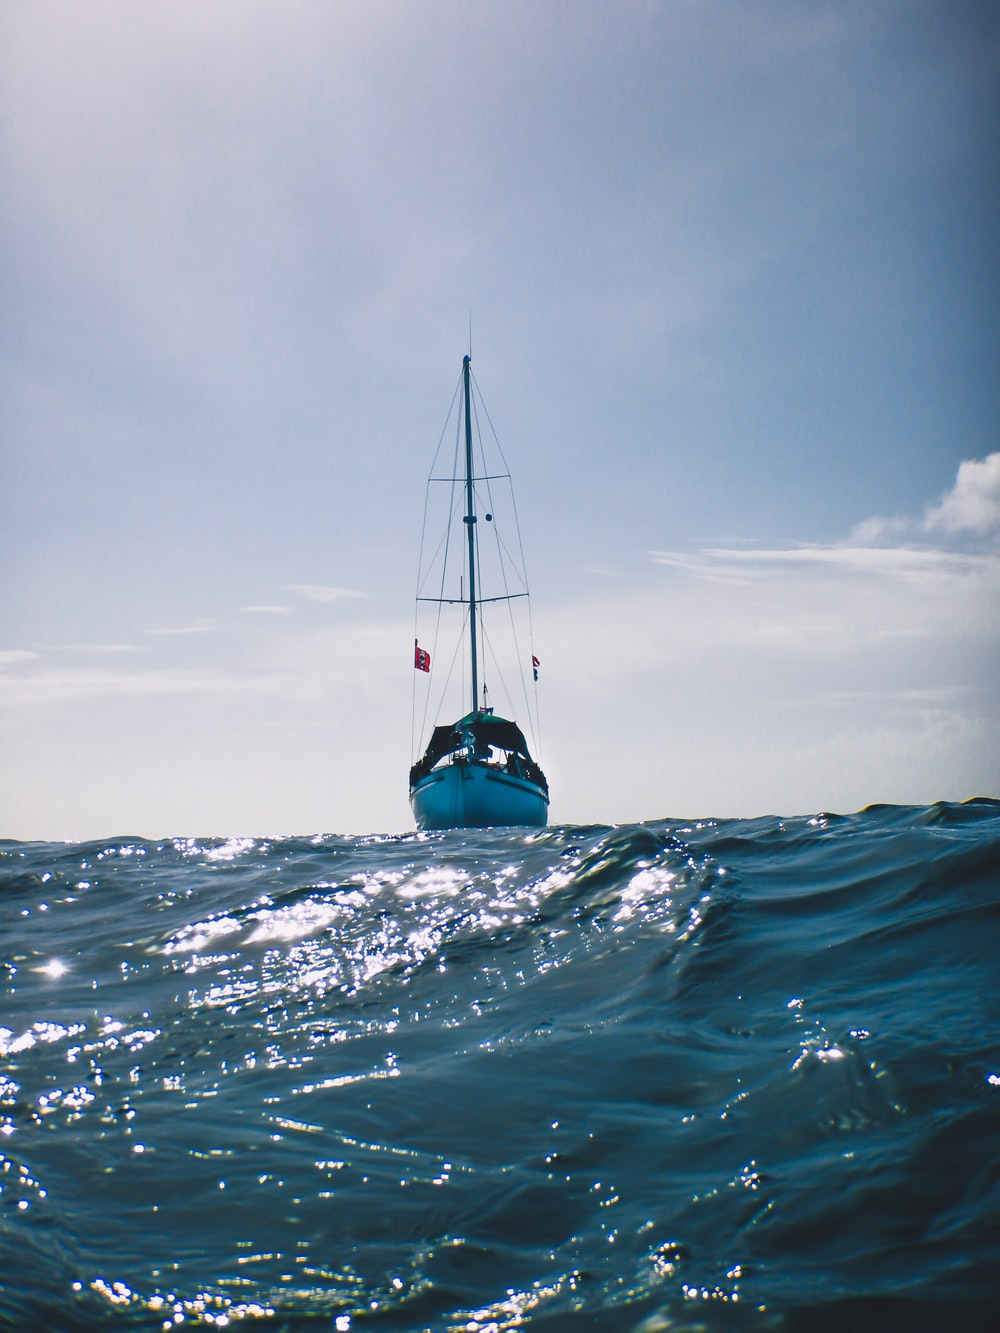 blue and white sail boat on body of water